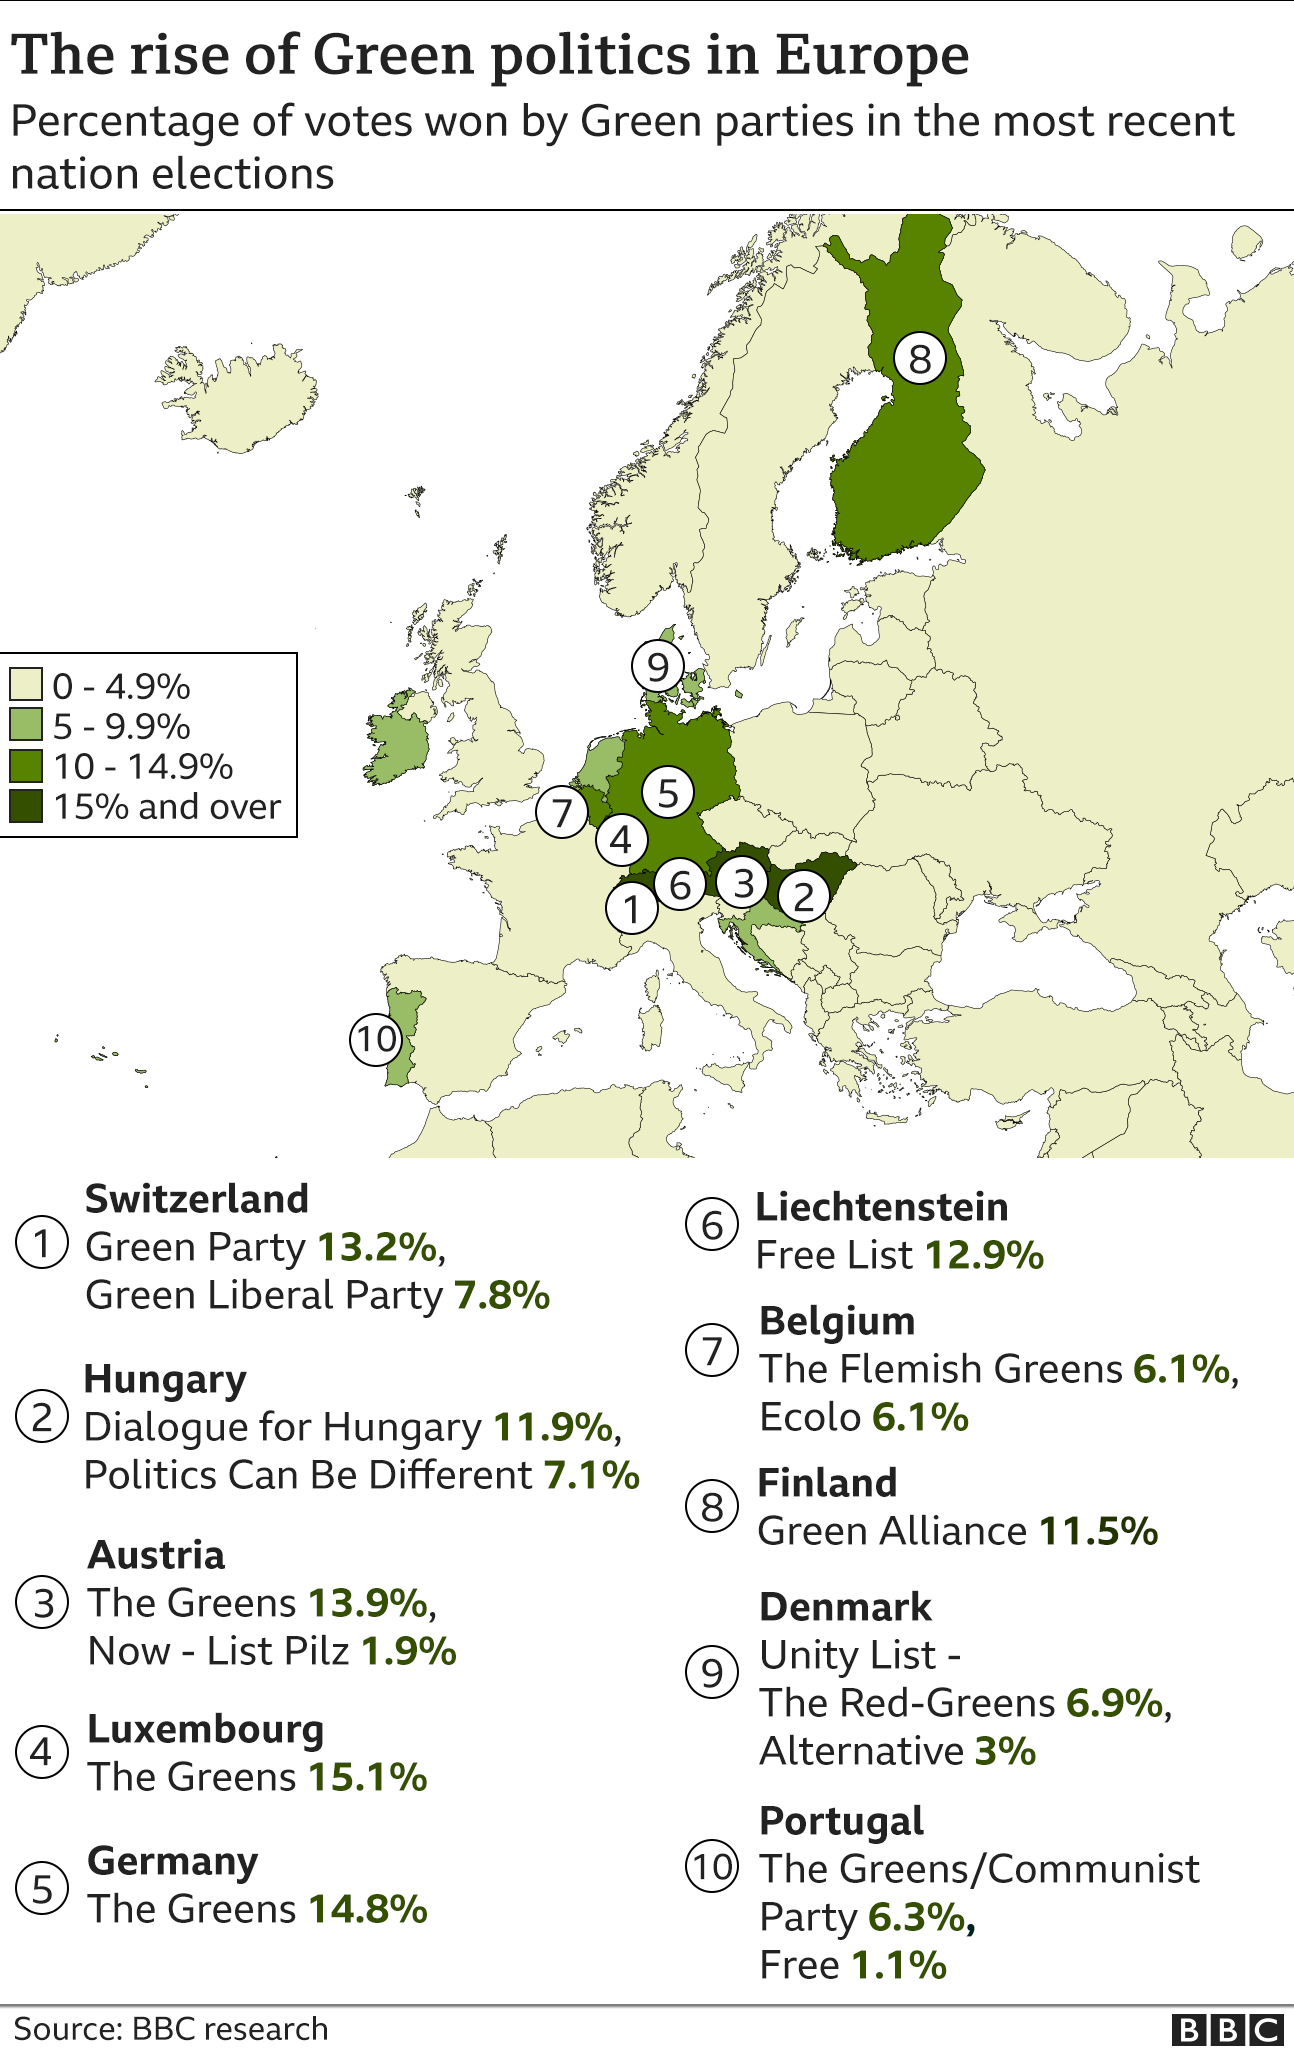 A map showing the percentage of votes for green parties in recent European elections